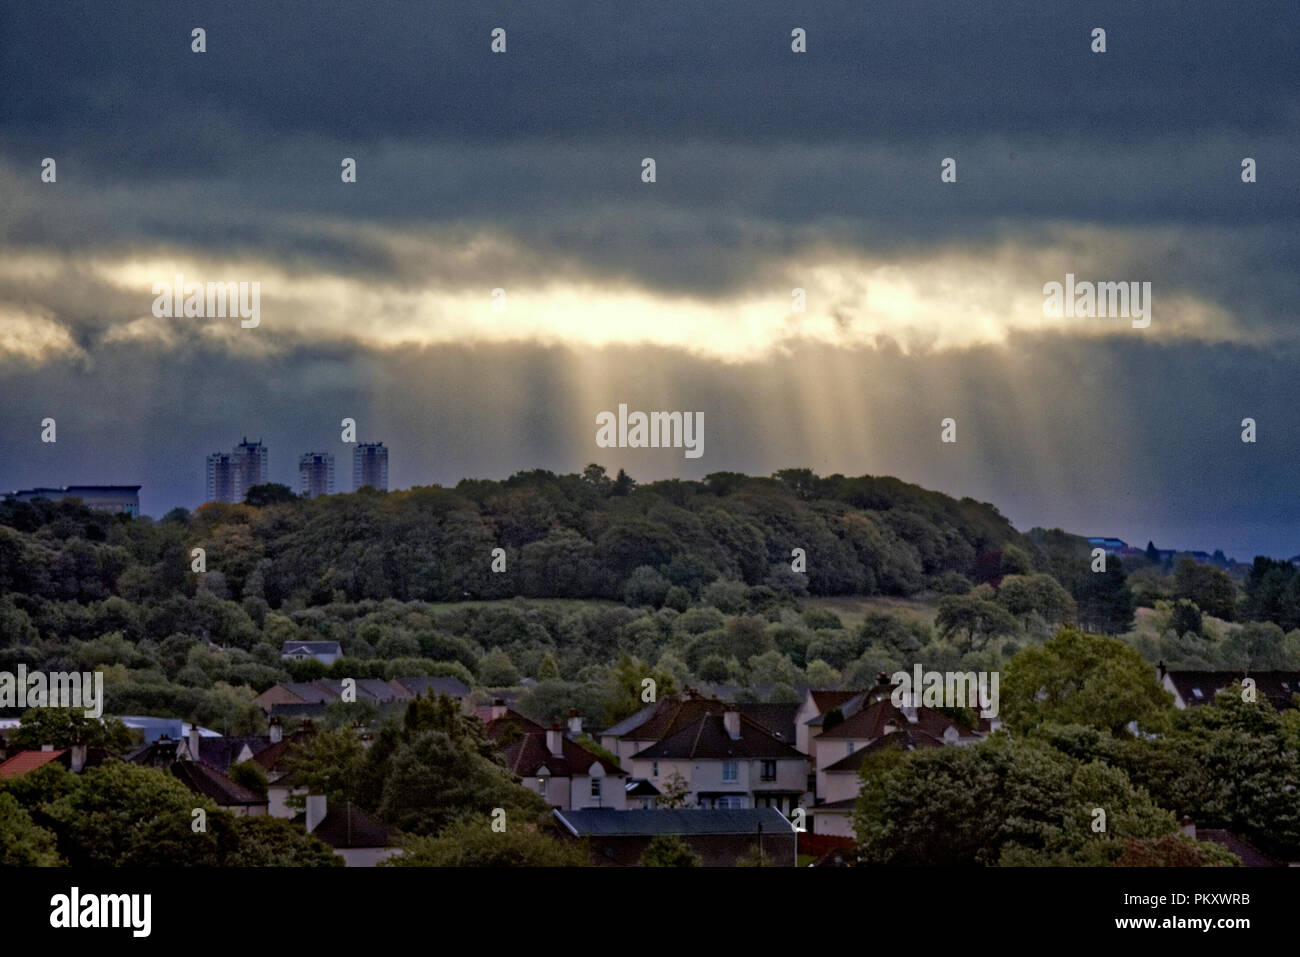 Glasgow, Scotland, UK, 16th September, 2018. UK Weather: God rays or Crepuscular rays over Dawsholm park and the towers of Maryhill and the east of the city as morning sun works its way through the dark storm clouds ahead of the really stormy weather forecast for tomorrow. Gerard Ferry/Alamy news Credit: gerard ferry/Alamy Live News Stock Photo